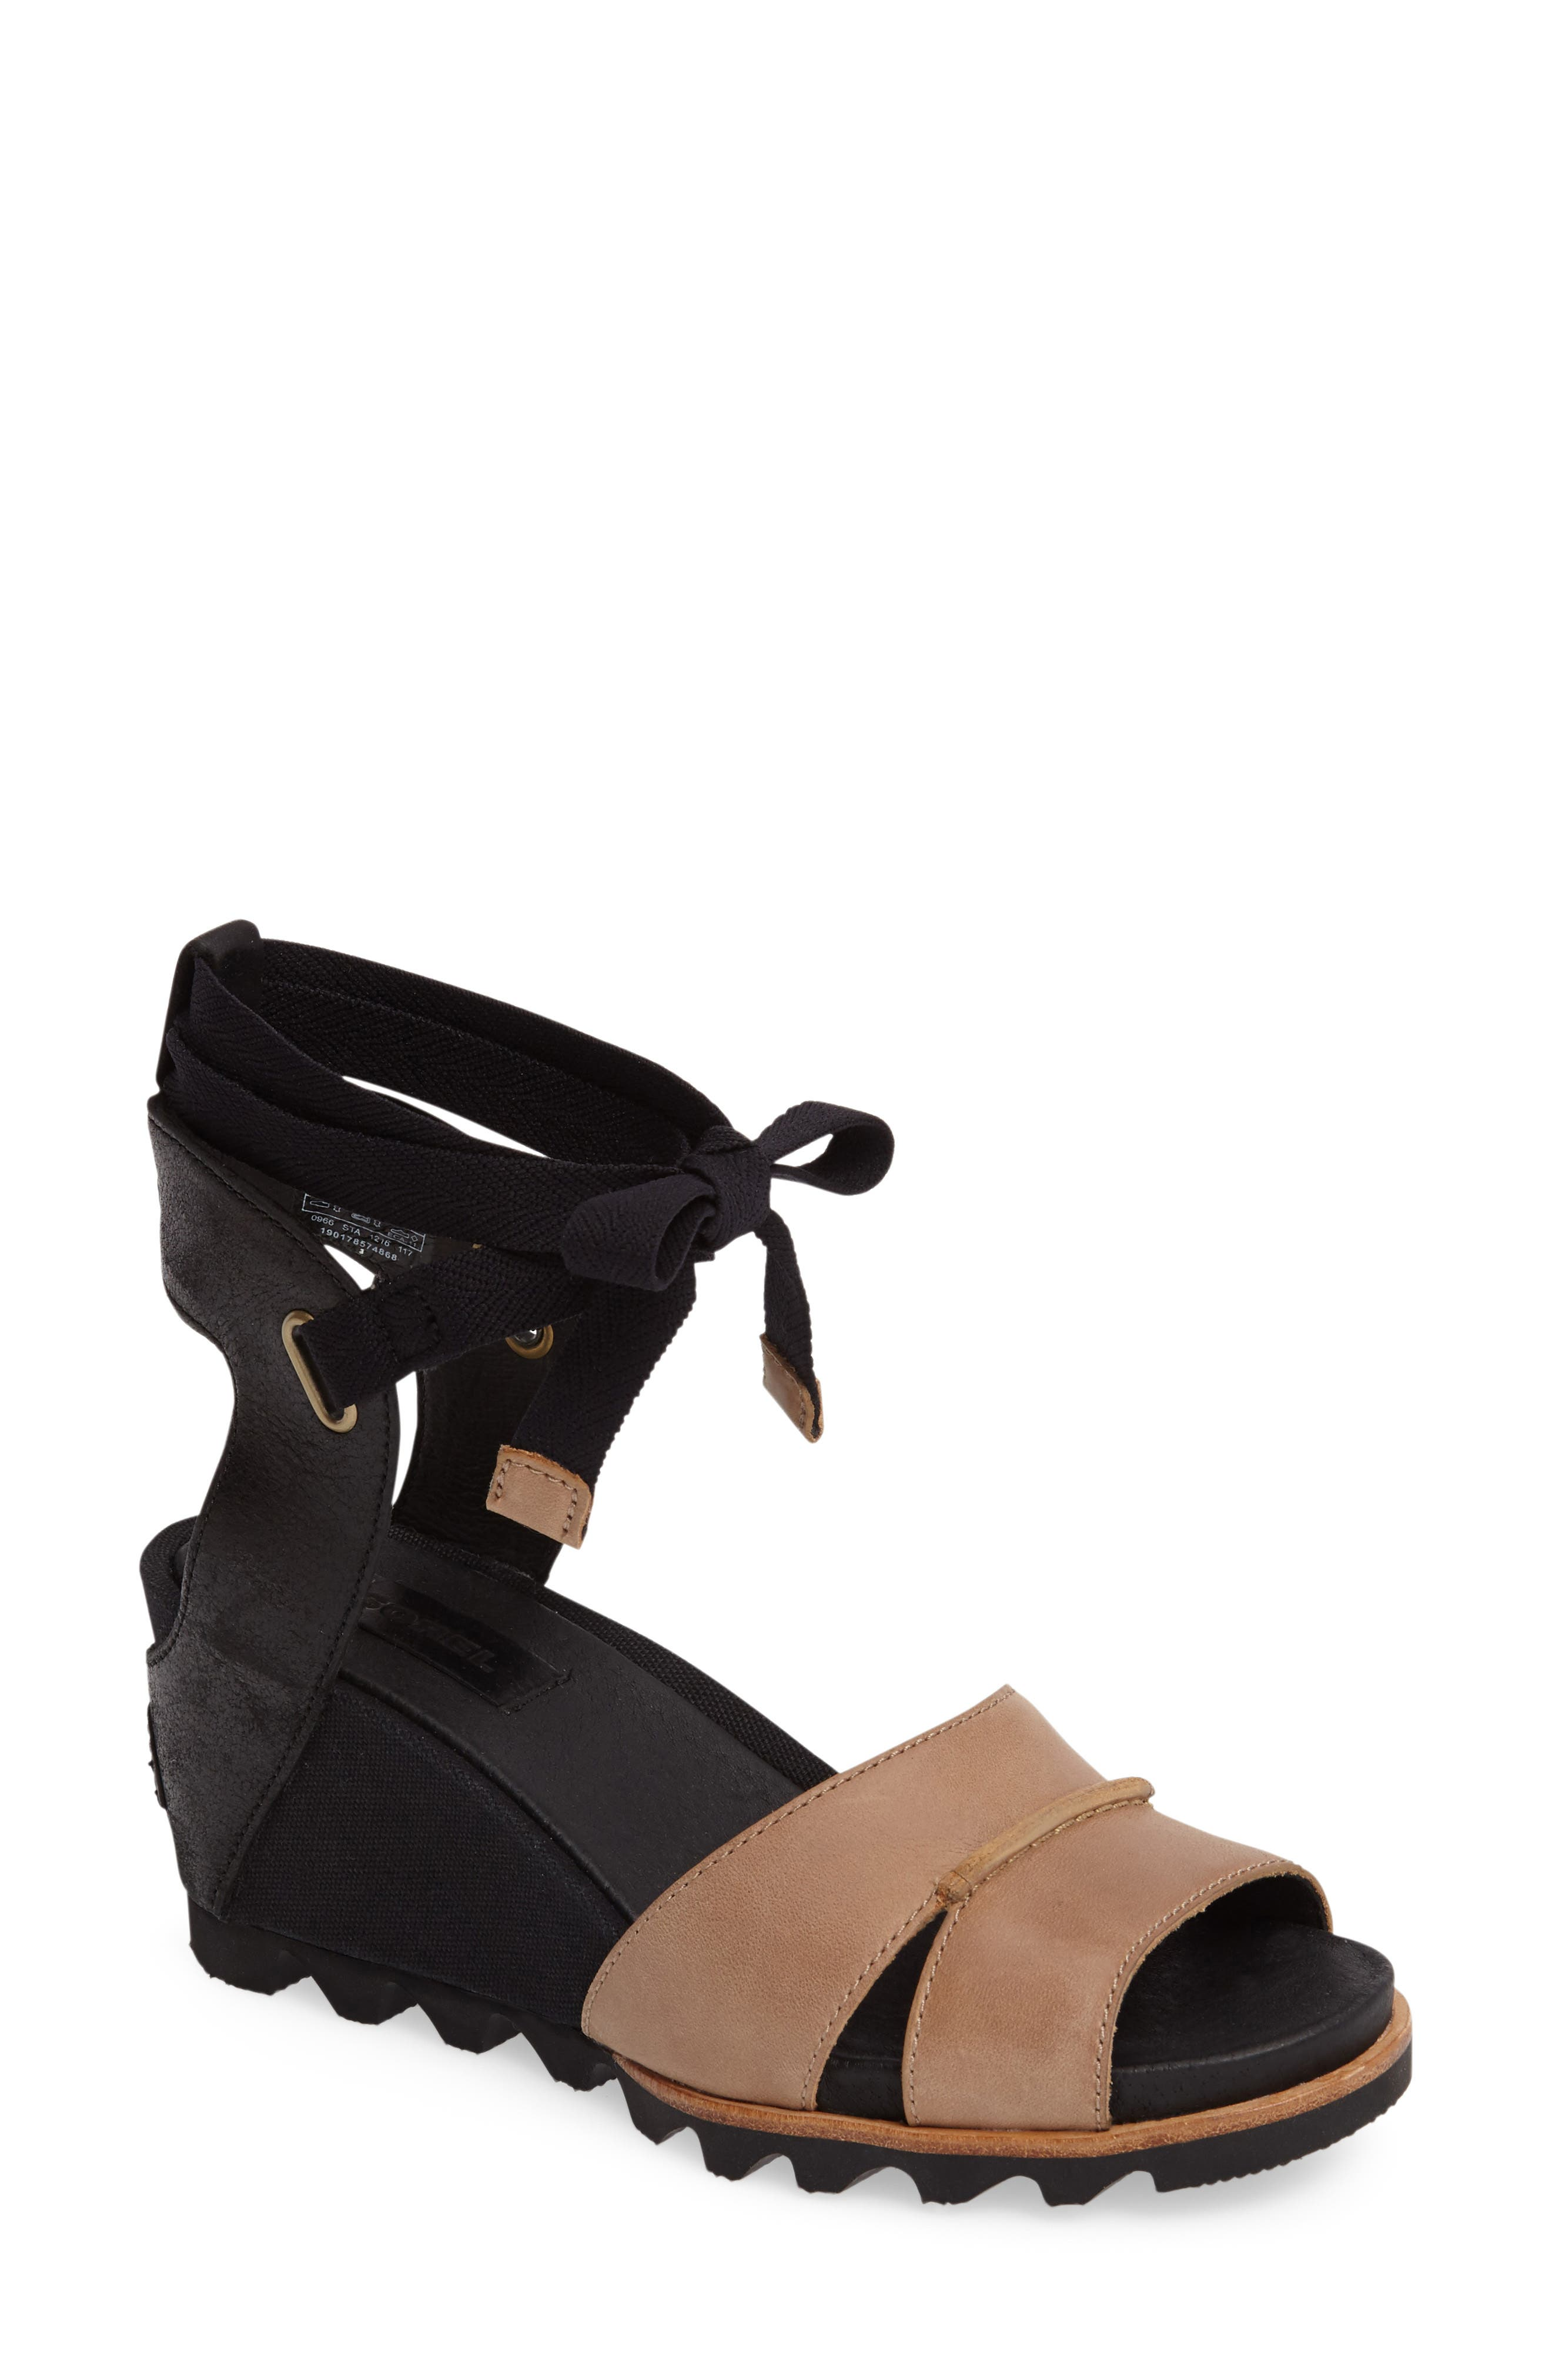 SOREL Joanie Wrap Wedge Sandal (Women)